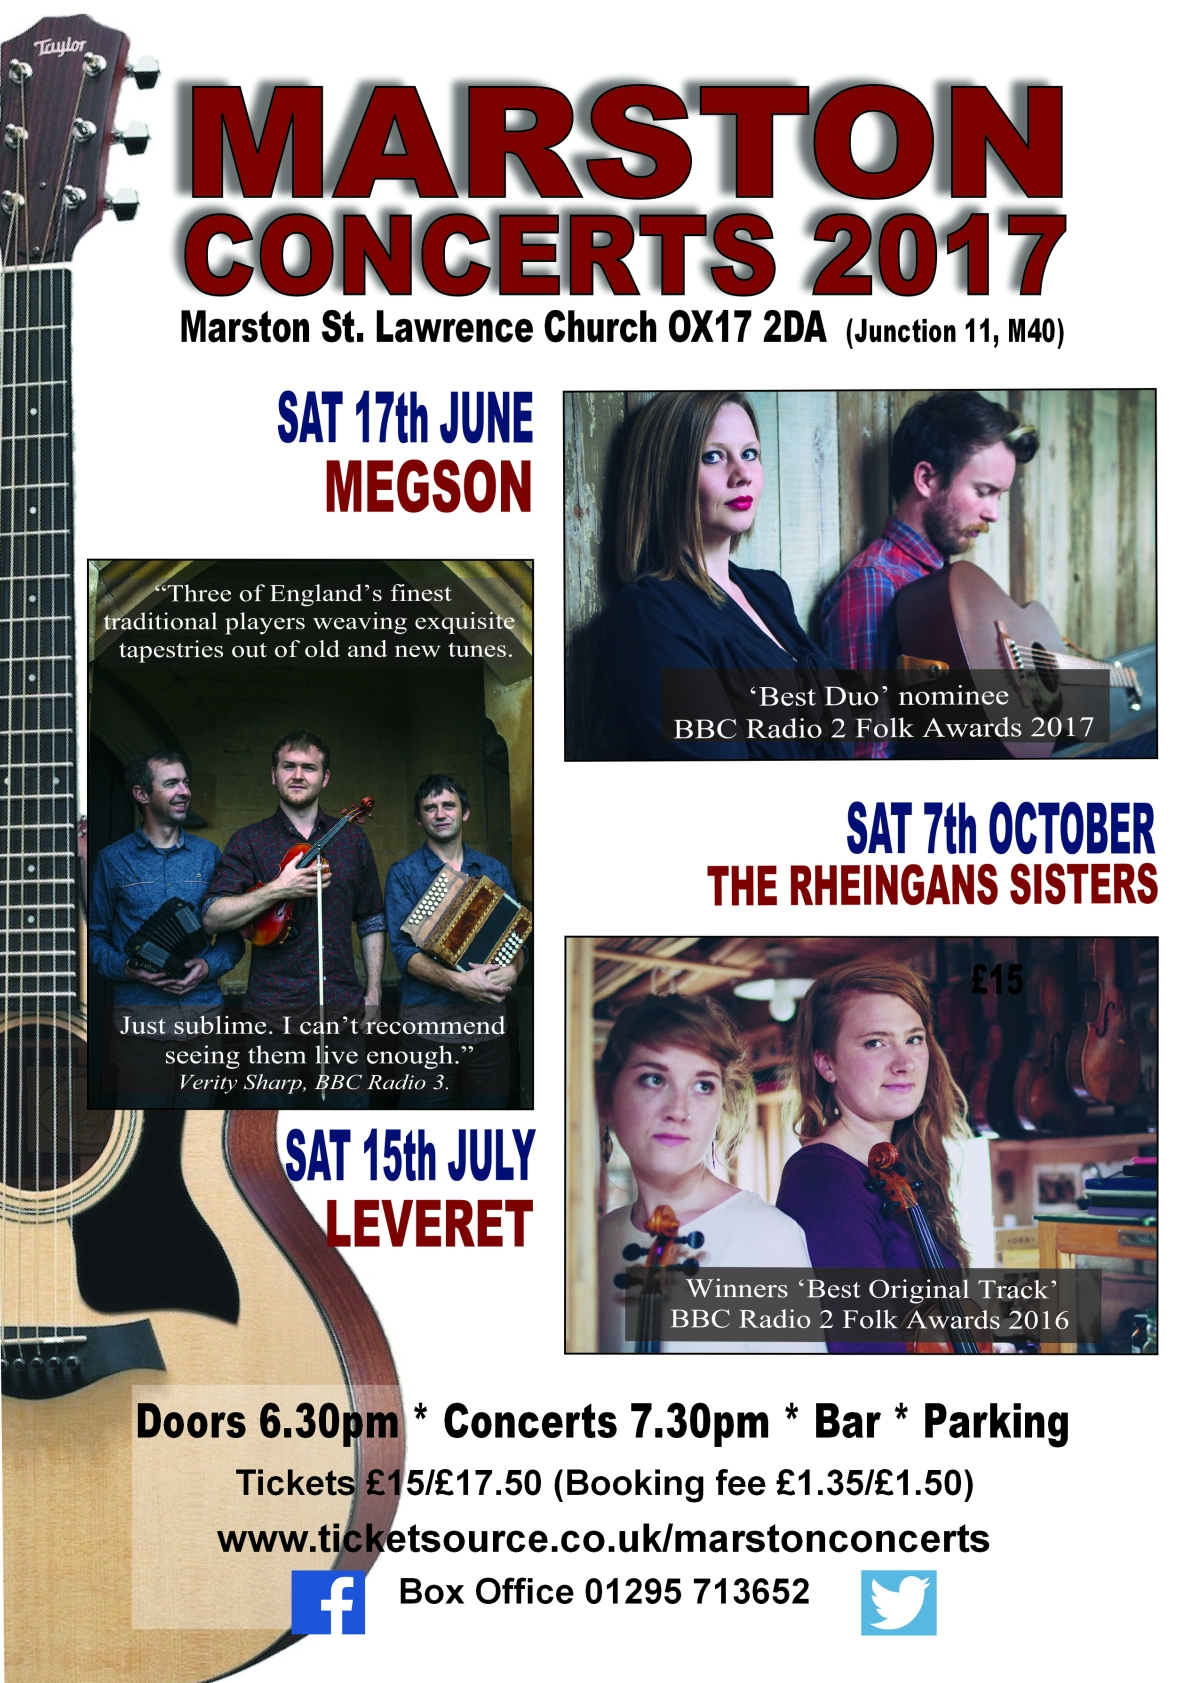 A4 Marston Concerts 17 flyer